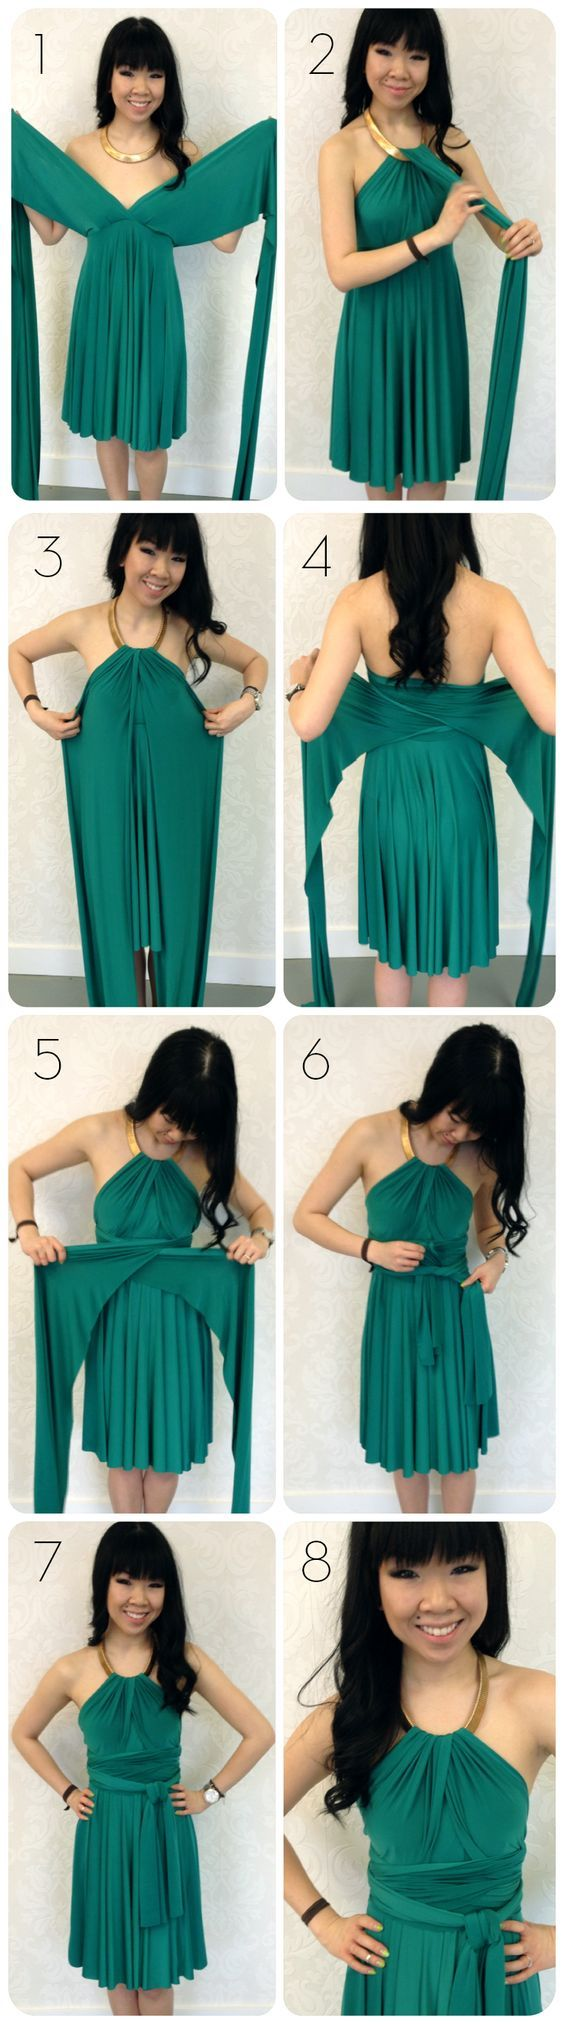 Use a necklace to create a metallic halter neckline with your convertible dress! An easy way to refashion with existing pieces!